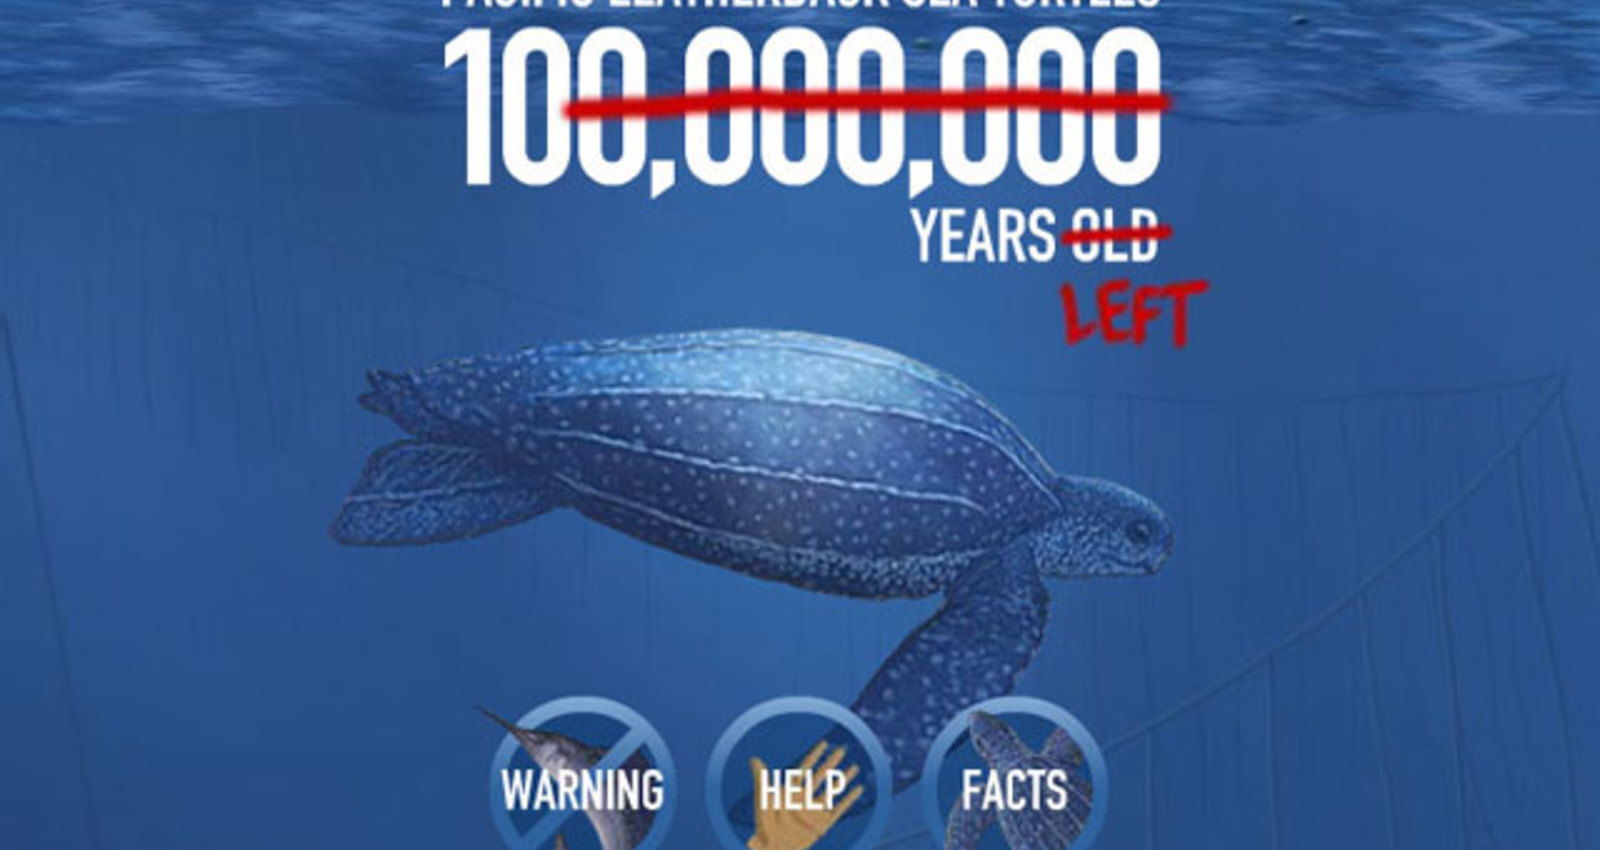 Save the Leatherback